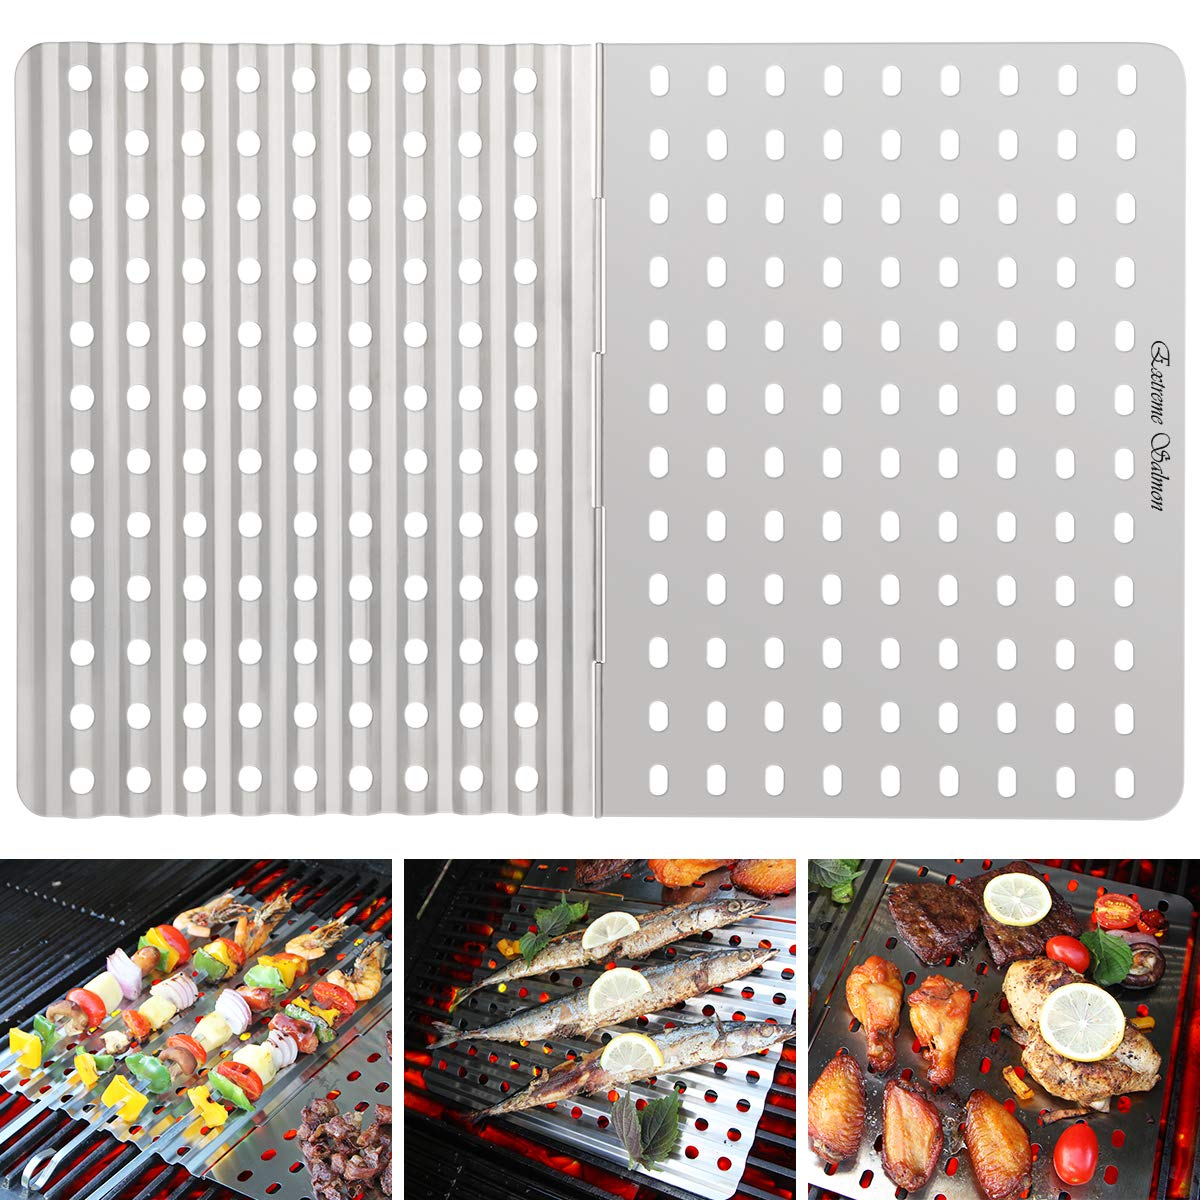 Grill Mat, BBQ Grill Mats Grilling Replacement Stainless Steel Grill Tray Grid Reusable Dishwasher Safe Barbecue Grill Accessories for Grilling Meat Vegetables for Gas Charcoal Grill Oven Smoker